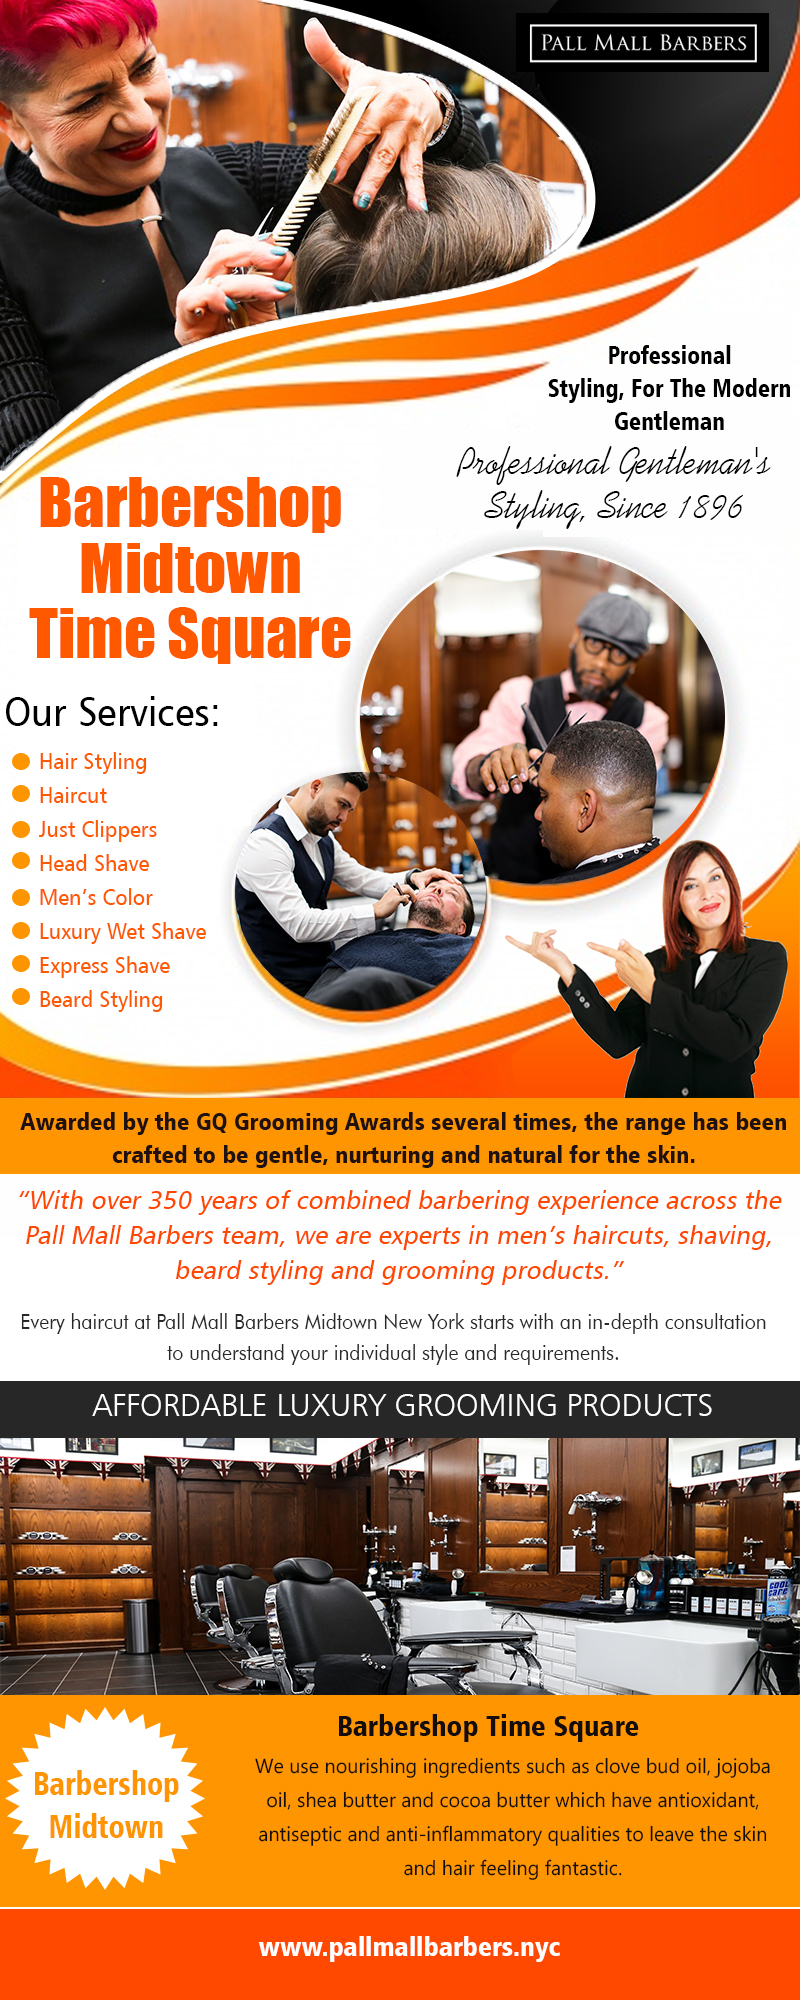 Barbershop Midtown Time Square